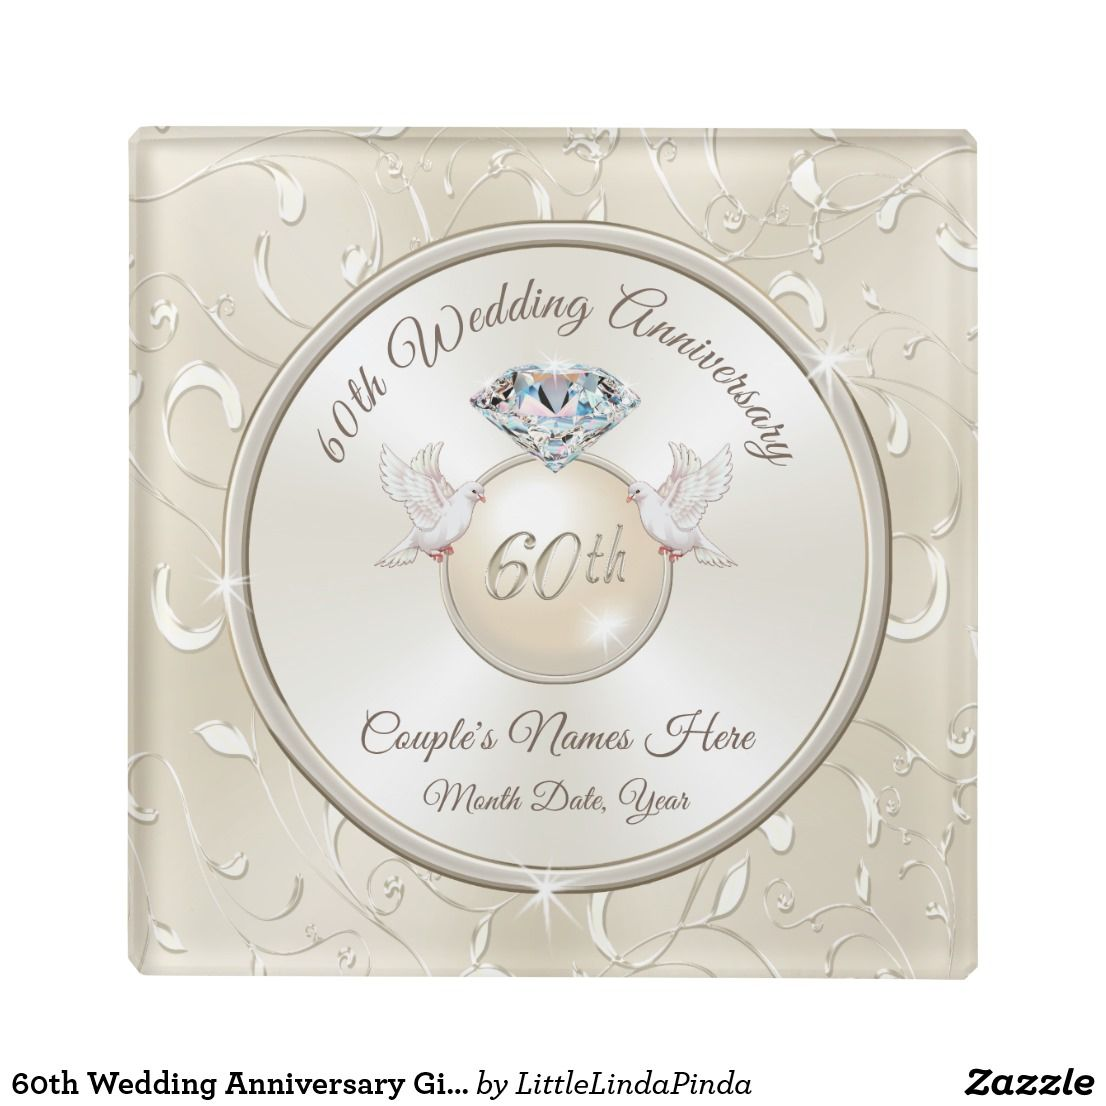 60th Wedding Anniversary Gift Ideas For Parents Glass Coaster Zazzle Com 60th Wedding Anniversary Gifts Anniversary Gifts Diamond Wedding Anniversary Gifts